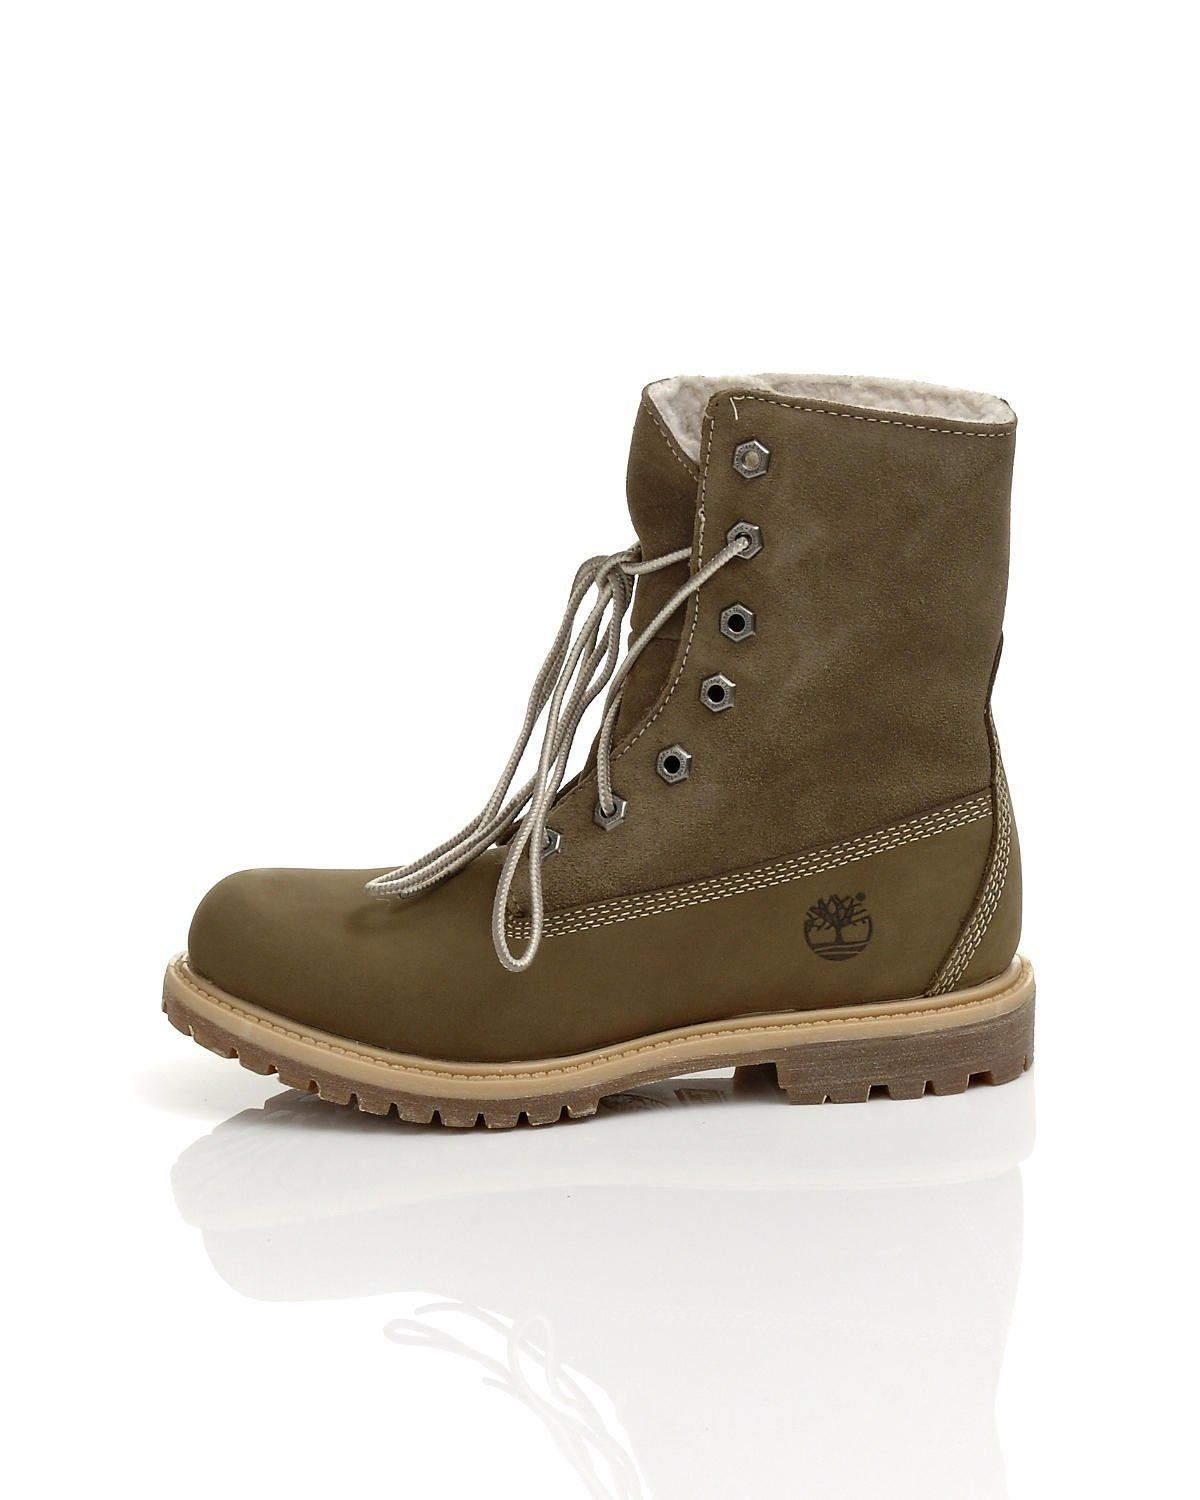 Amazon.com  Timberland Women s Boots  Shoes  0efcb055be13